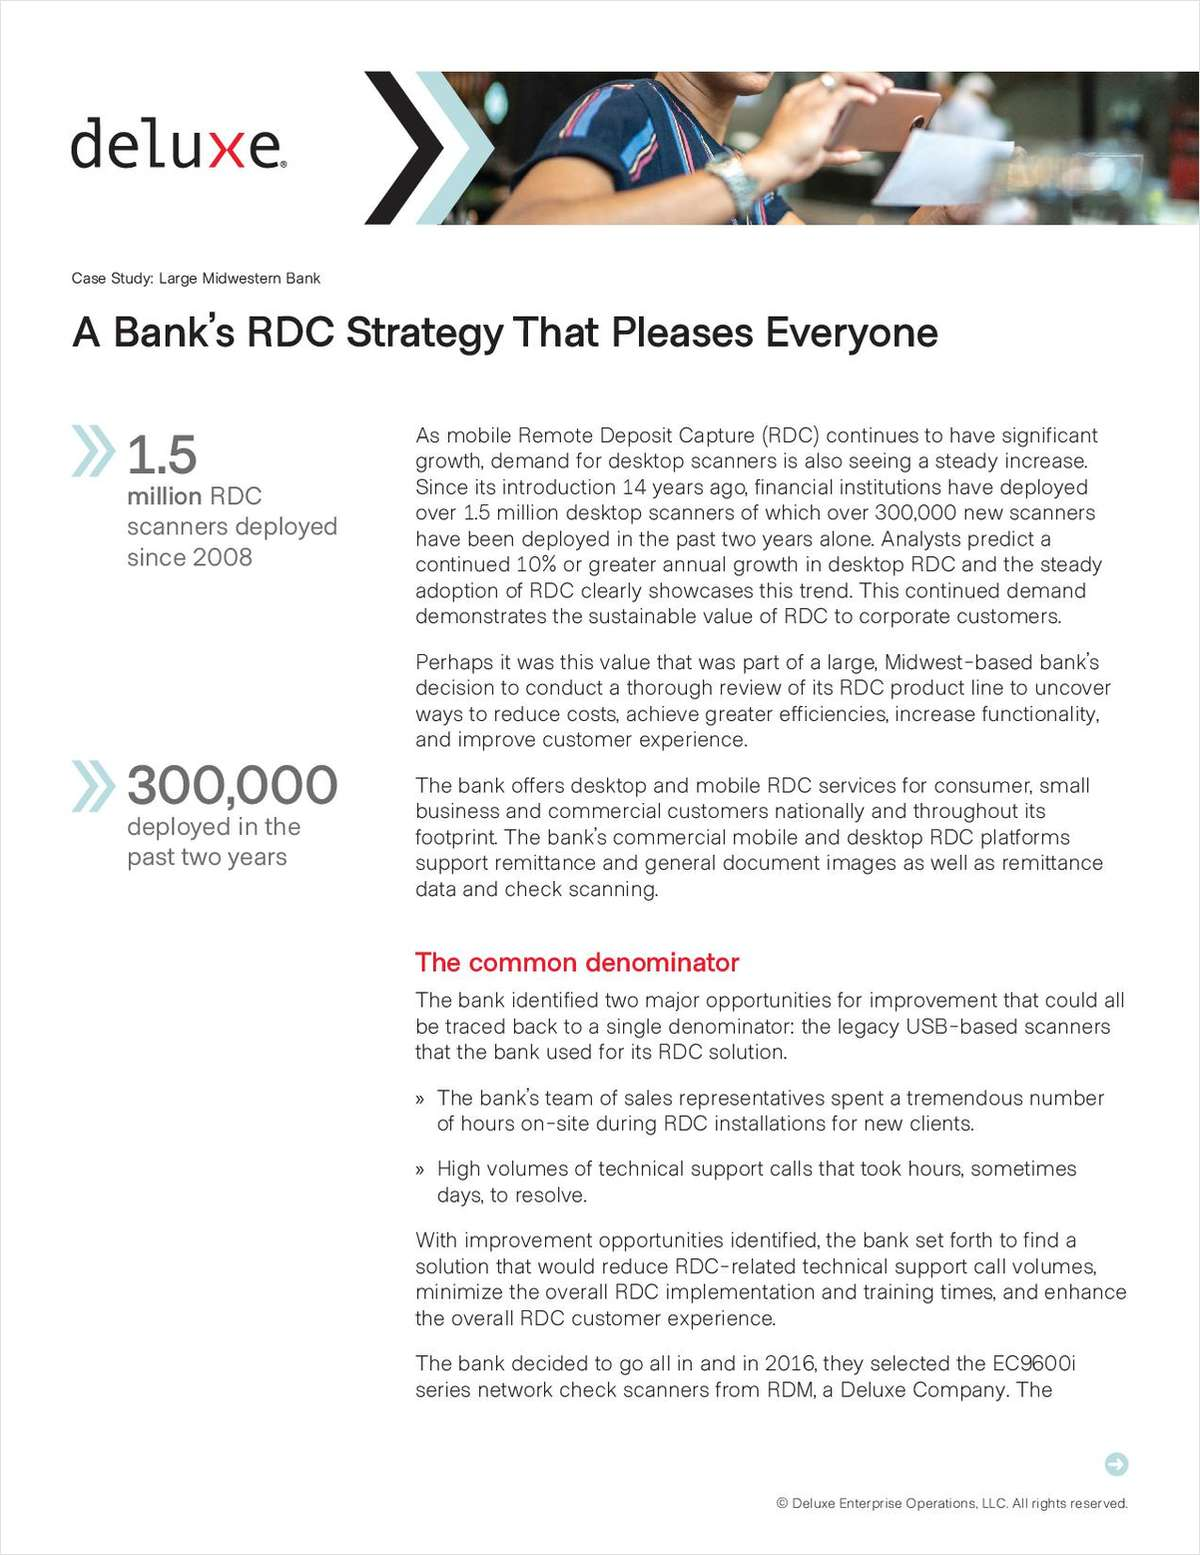 How to Make Everyone Happy: A Case Study of One Bank's RDC Transformation